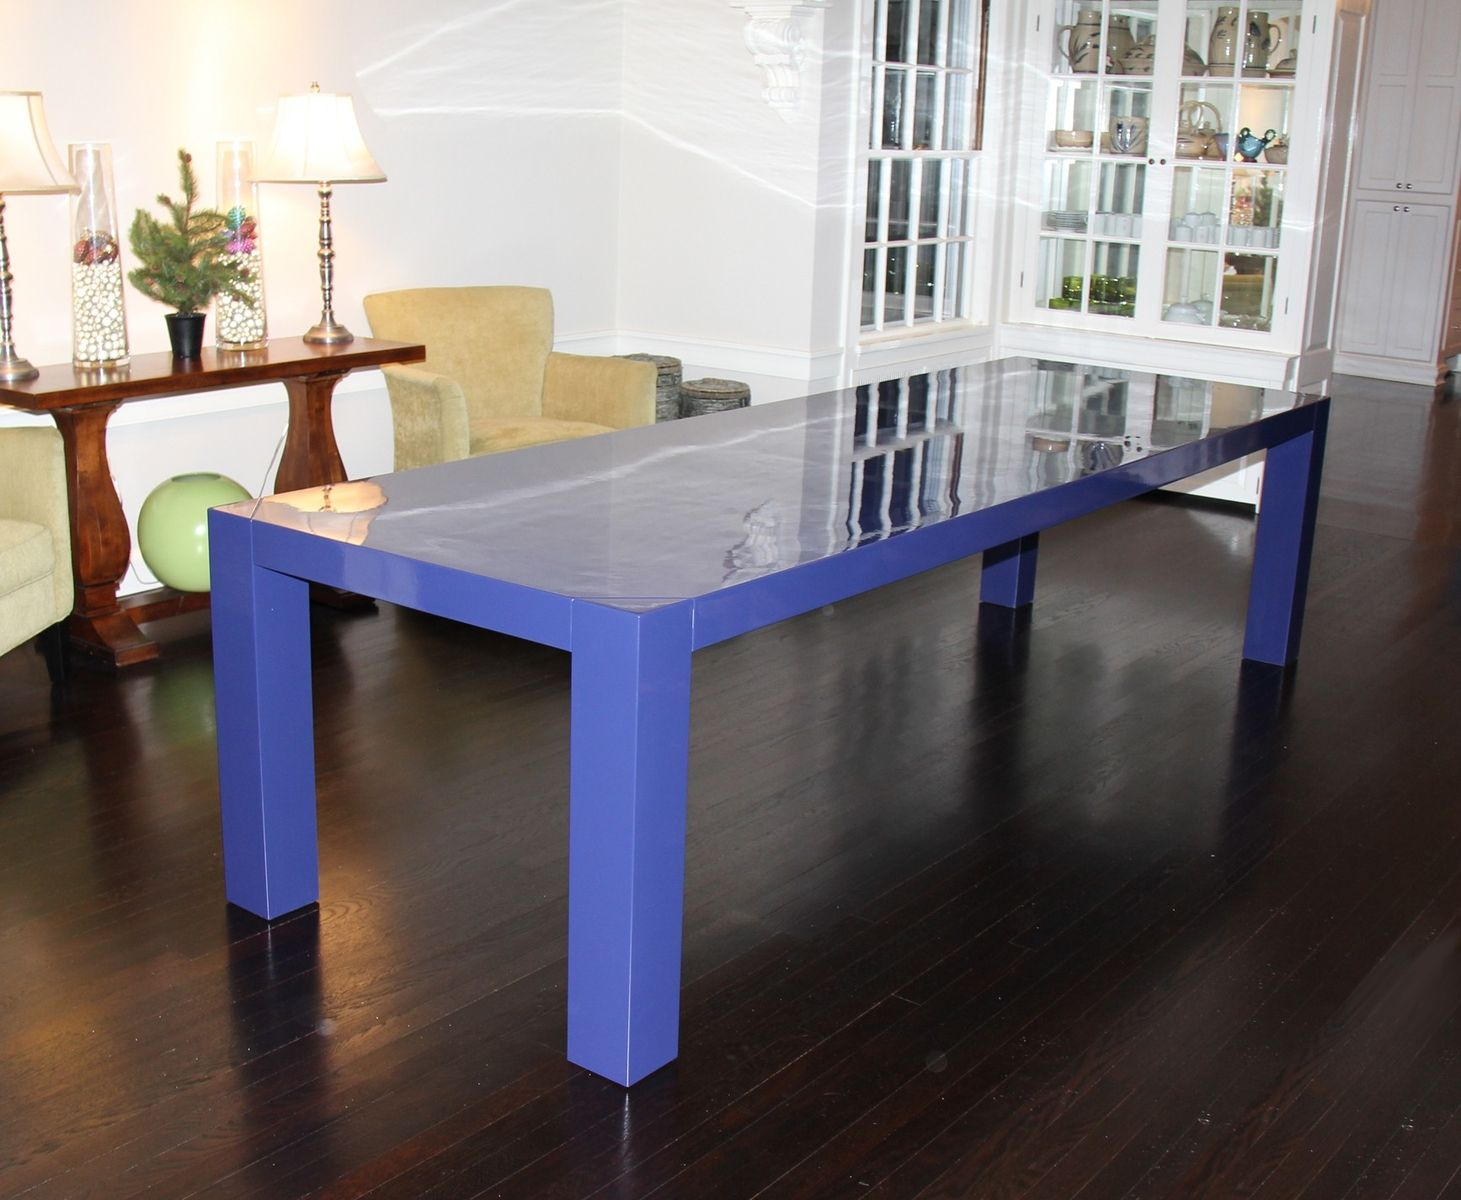 D313 Modern Dining Room Set In White Lacquer Finish: Handmade Lacquer Dining Table By Dorch Design Studio